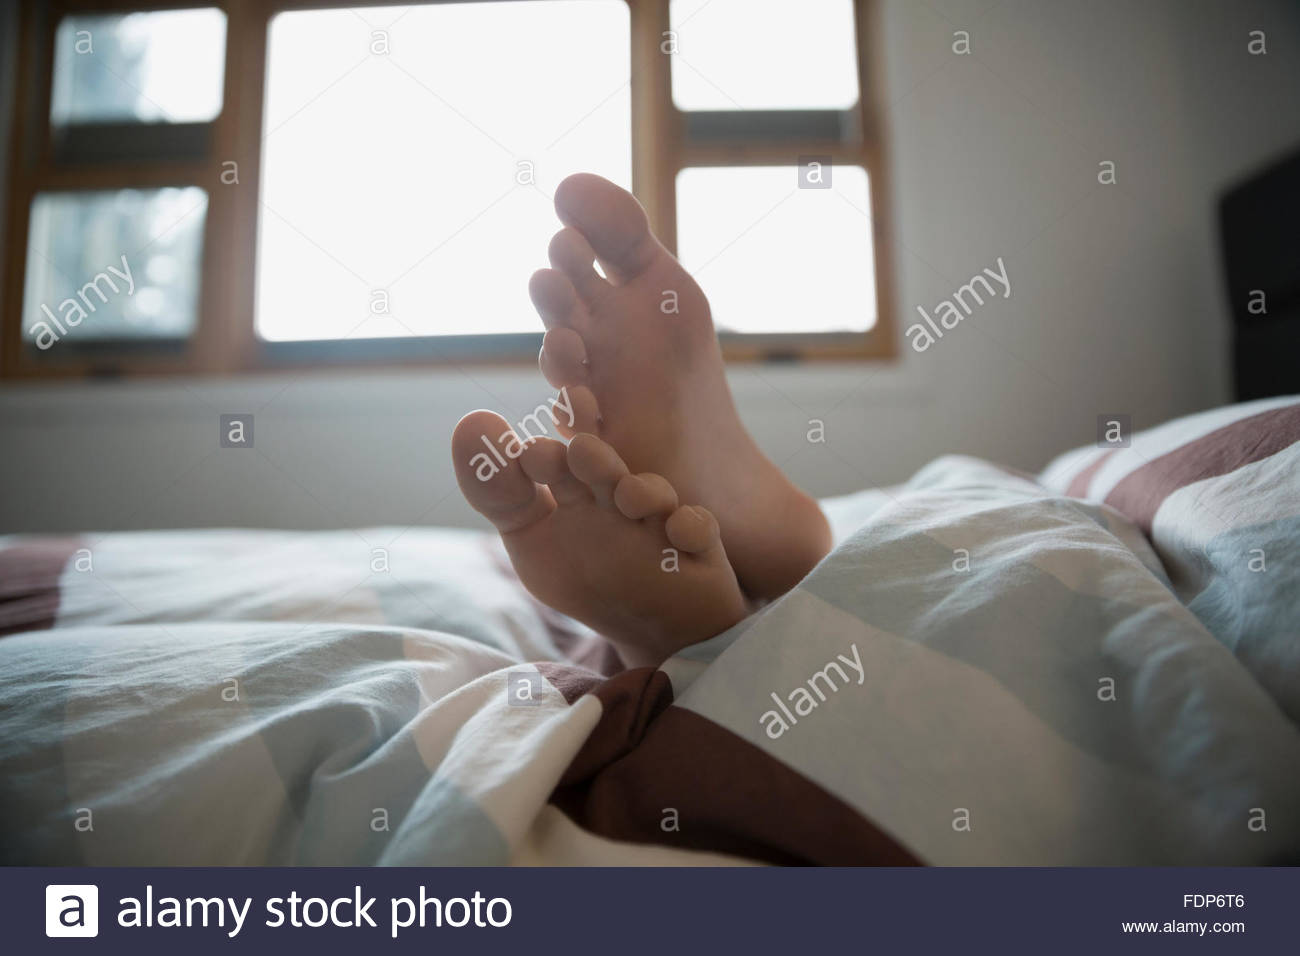 close up girls bare foot on bed - Stock Image